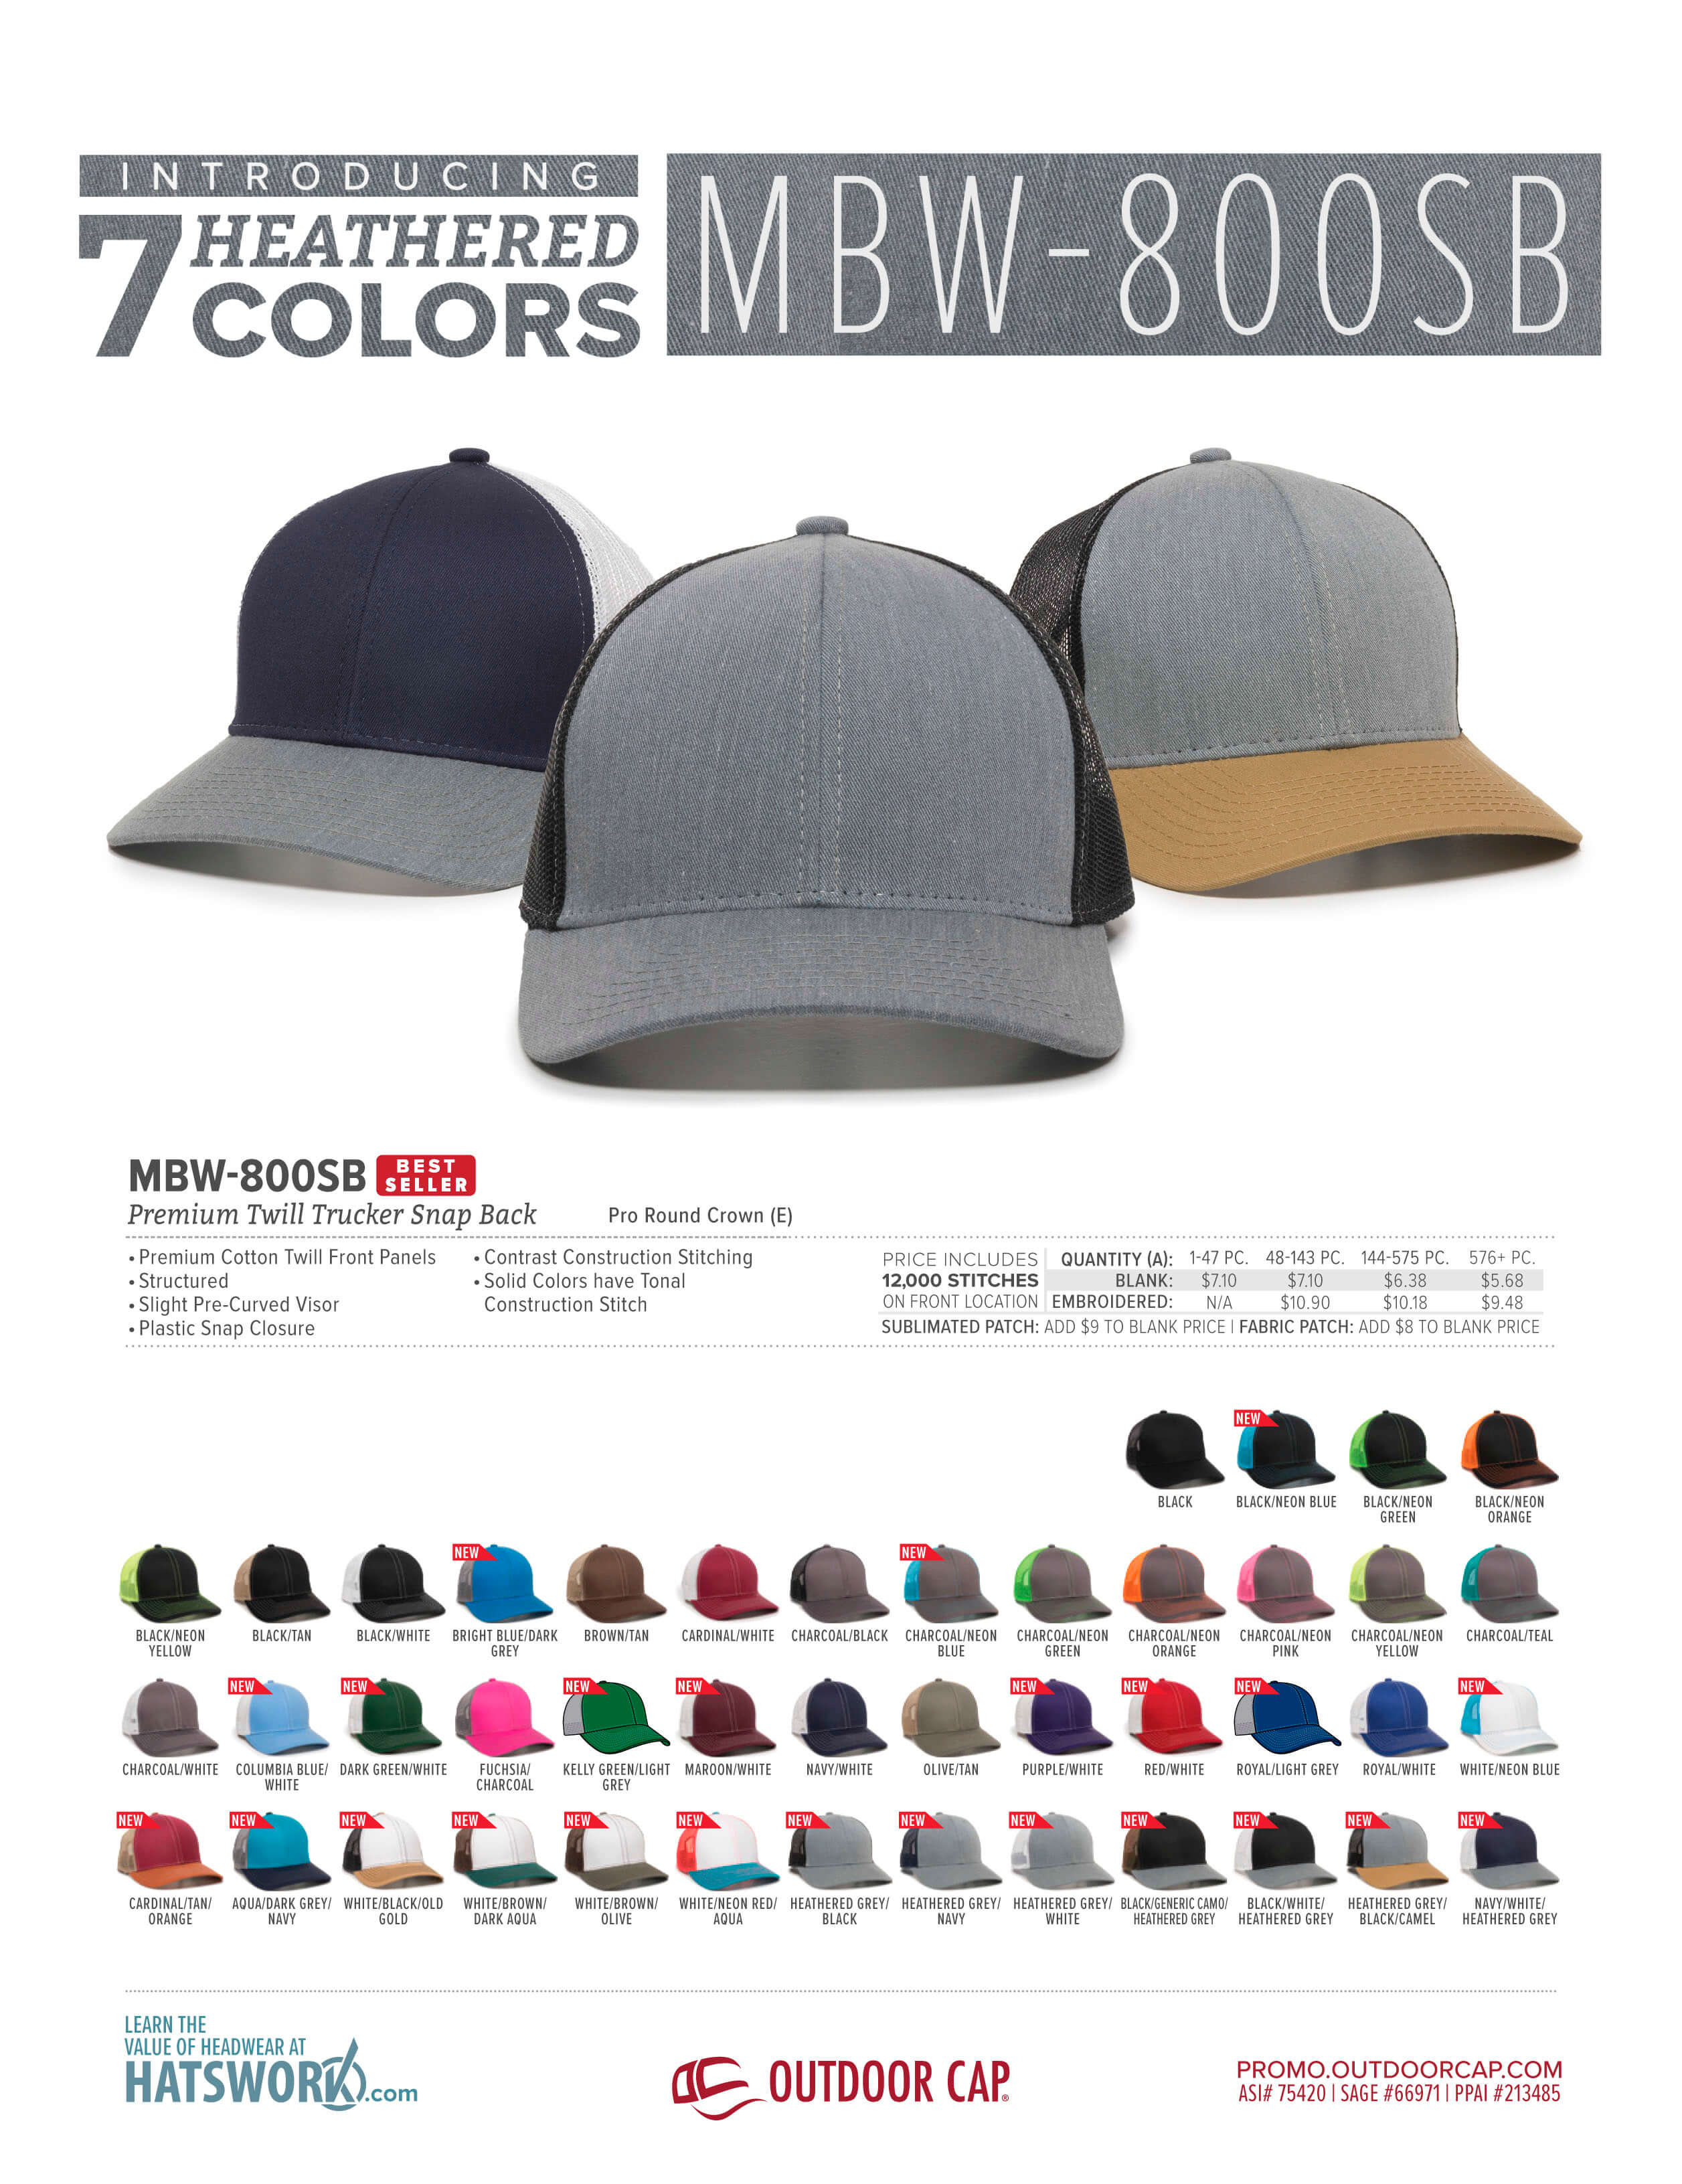 We Just Dropped New Heathered Colors To One Of Our Top Styles